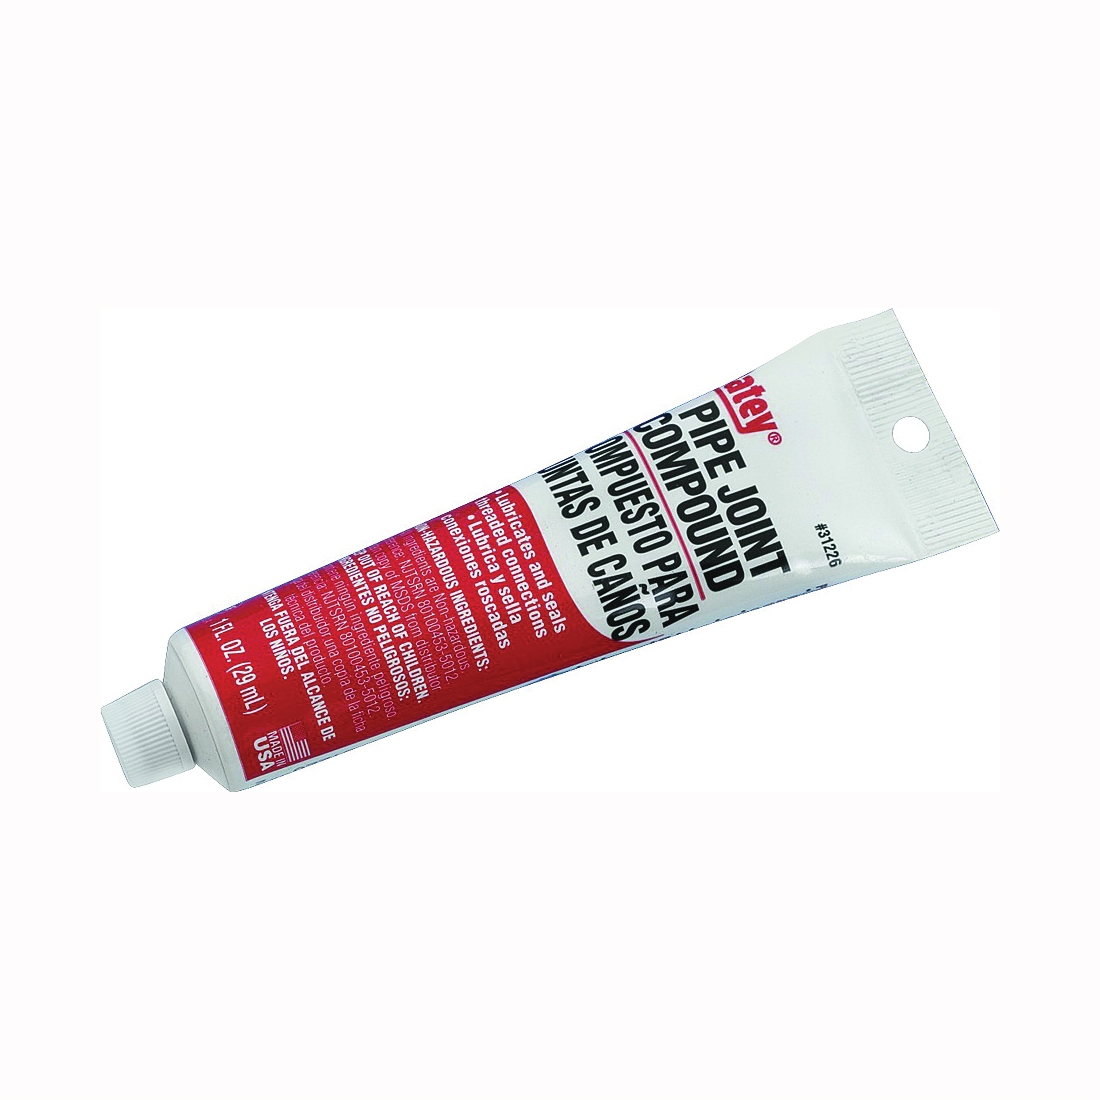 Picture of Oatey 31226 Pipe Joint Compound, 1 oz, Tube, Liquid, Paste, Gray